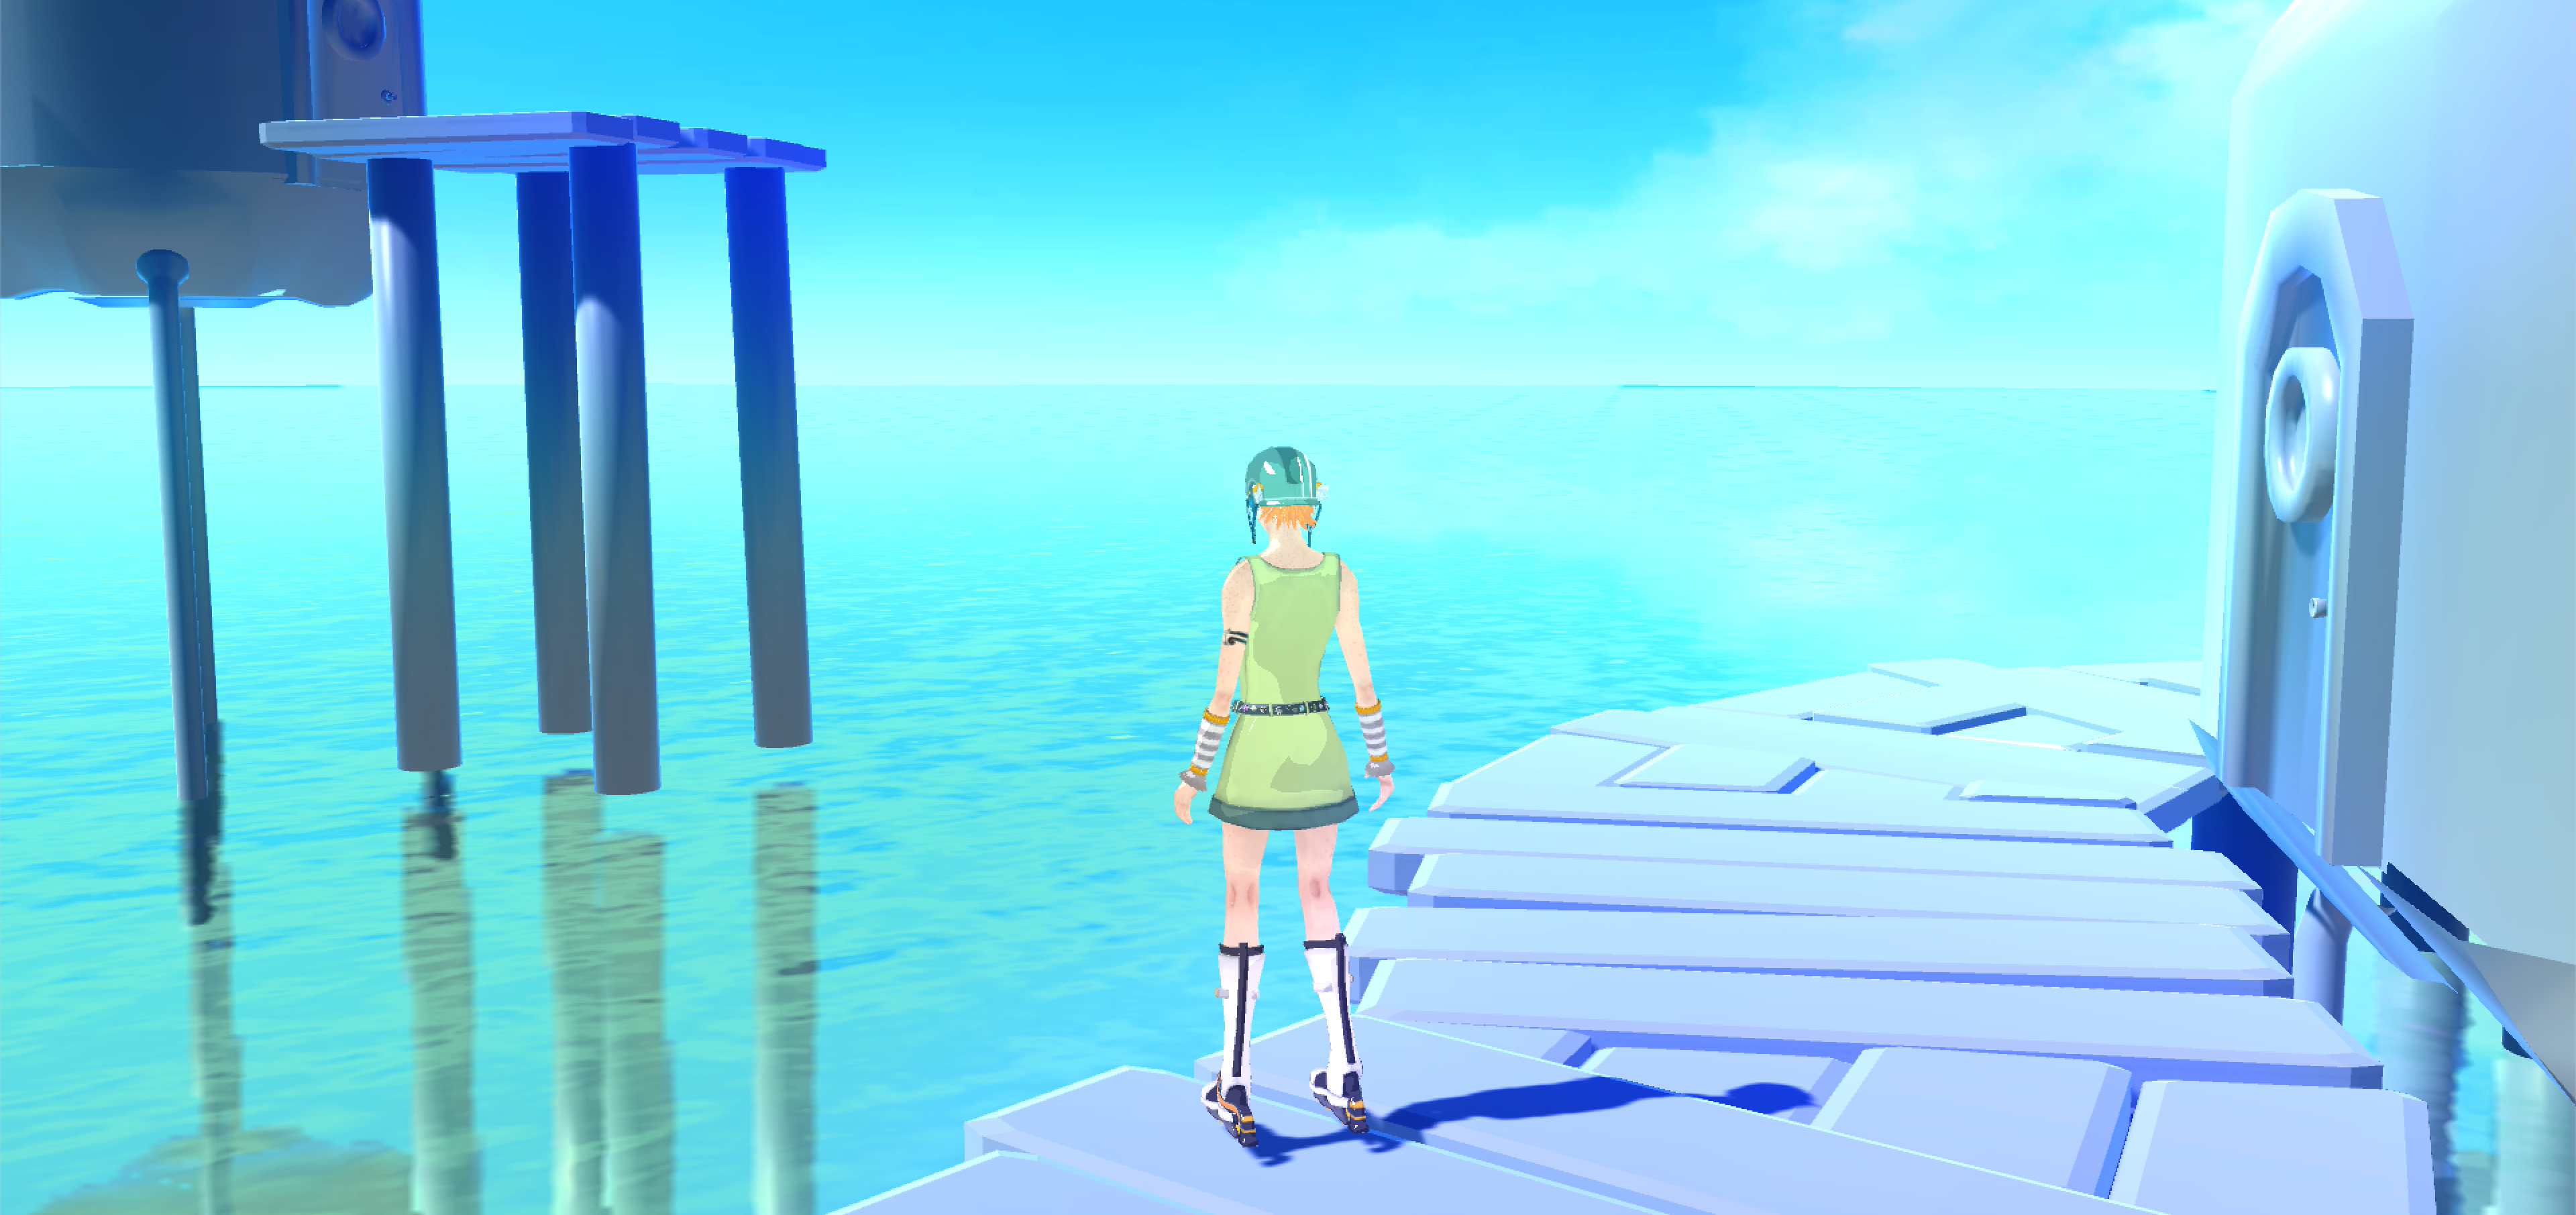 First Look at Aesthetic